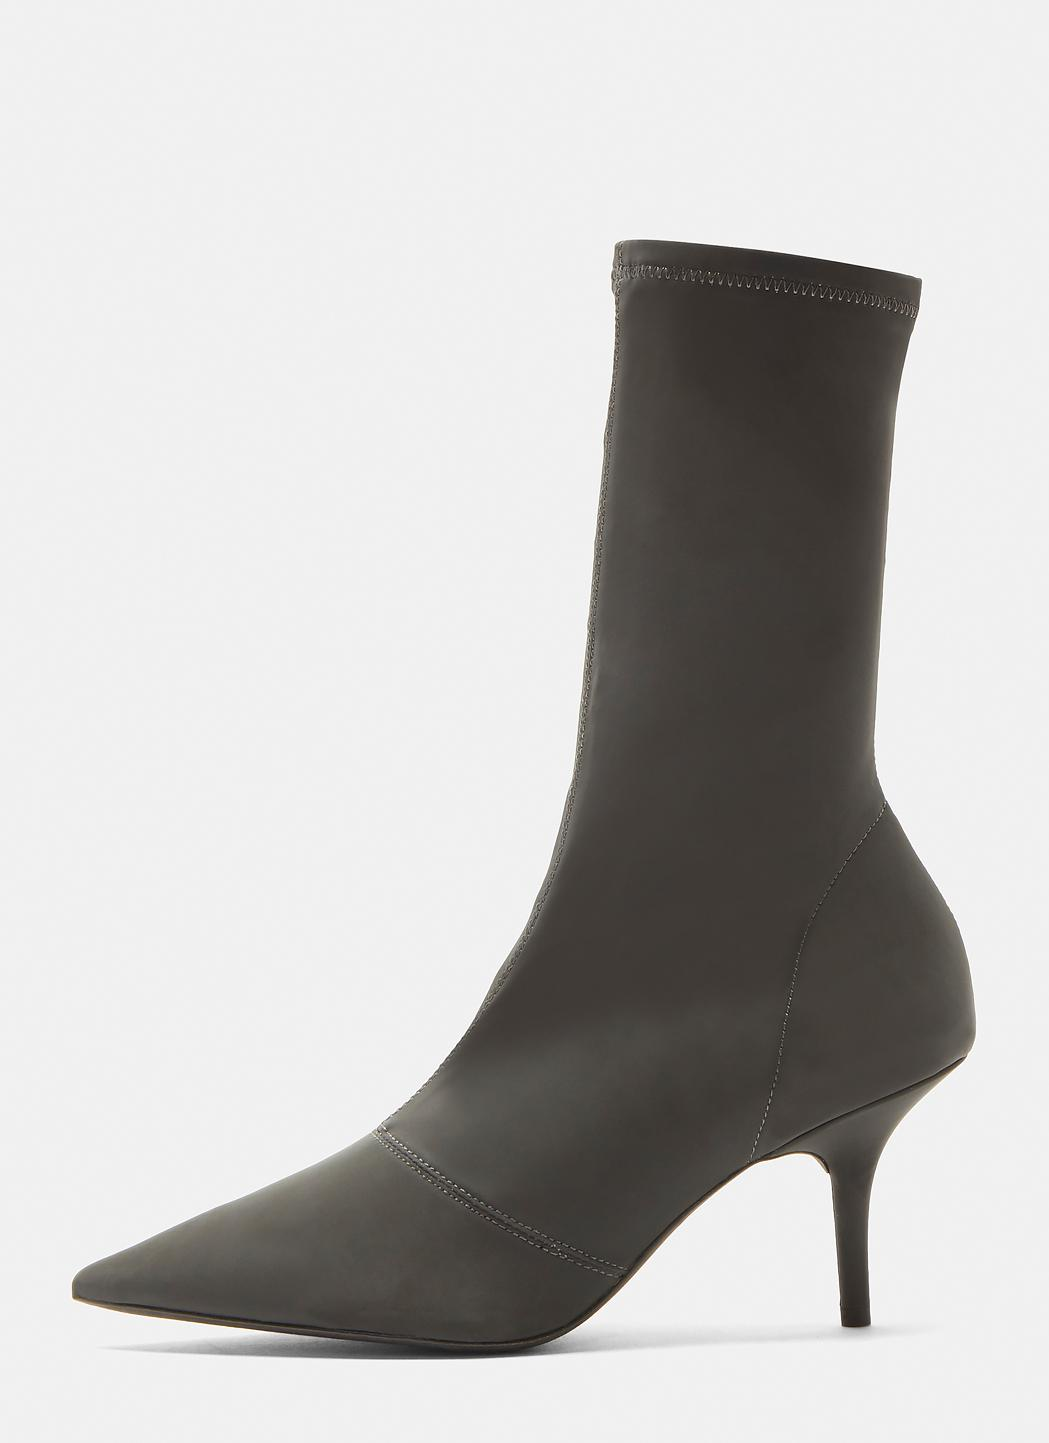 Yeezy Graphite Reflective Ankle Boot 70mm Heel daJcKhYK